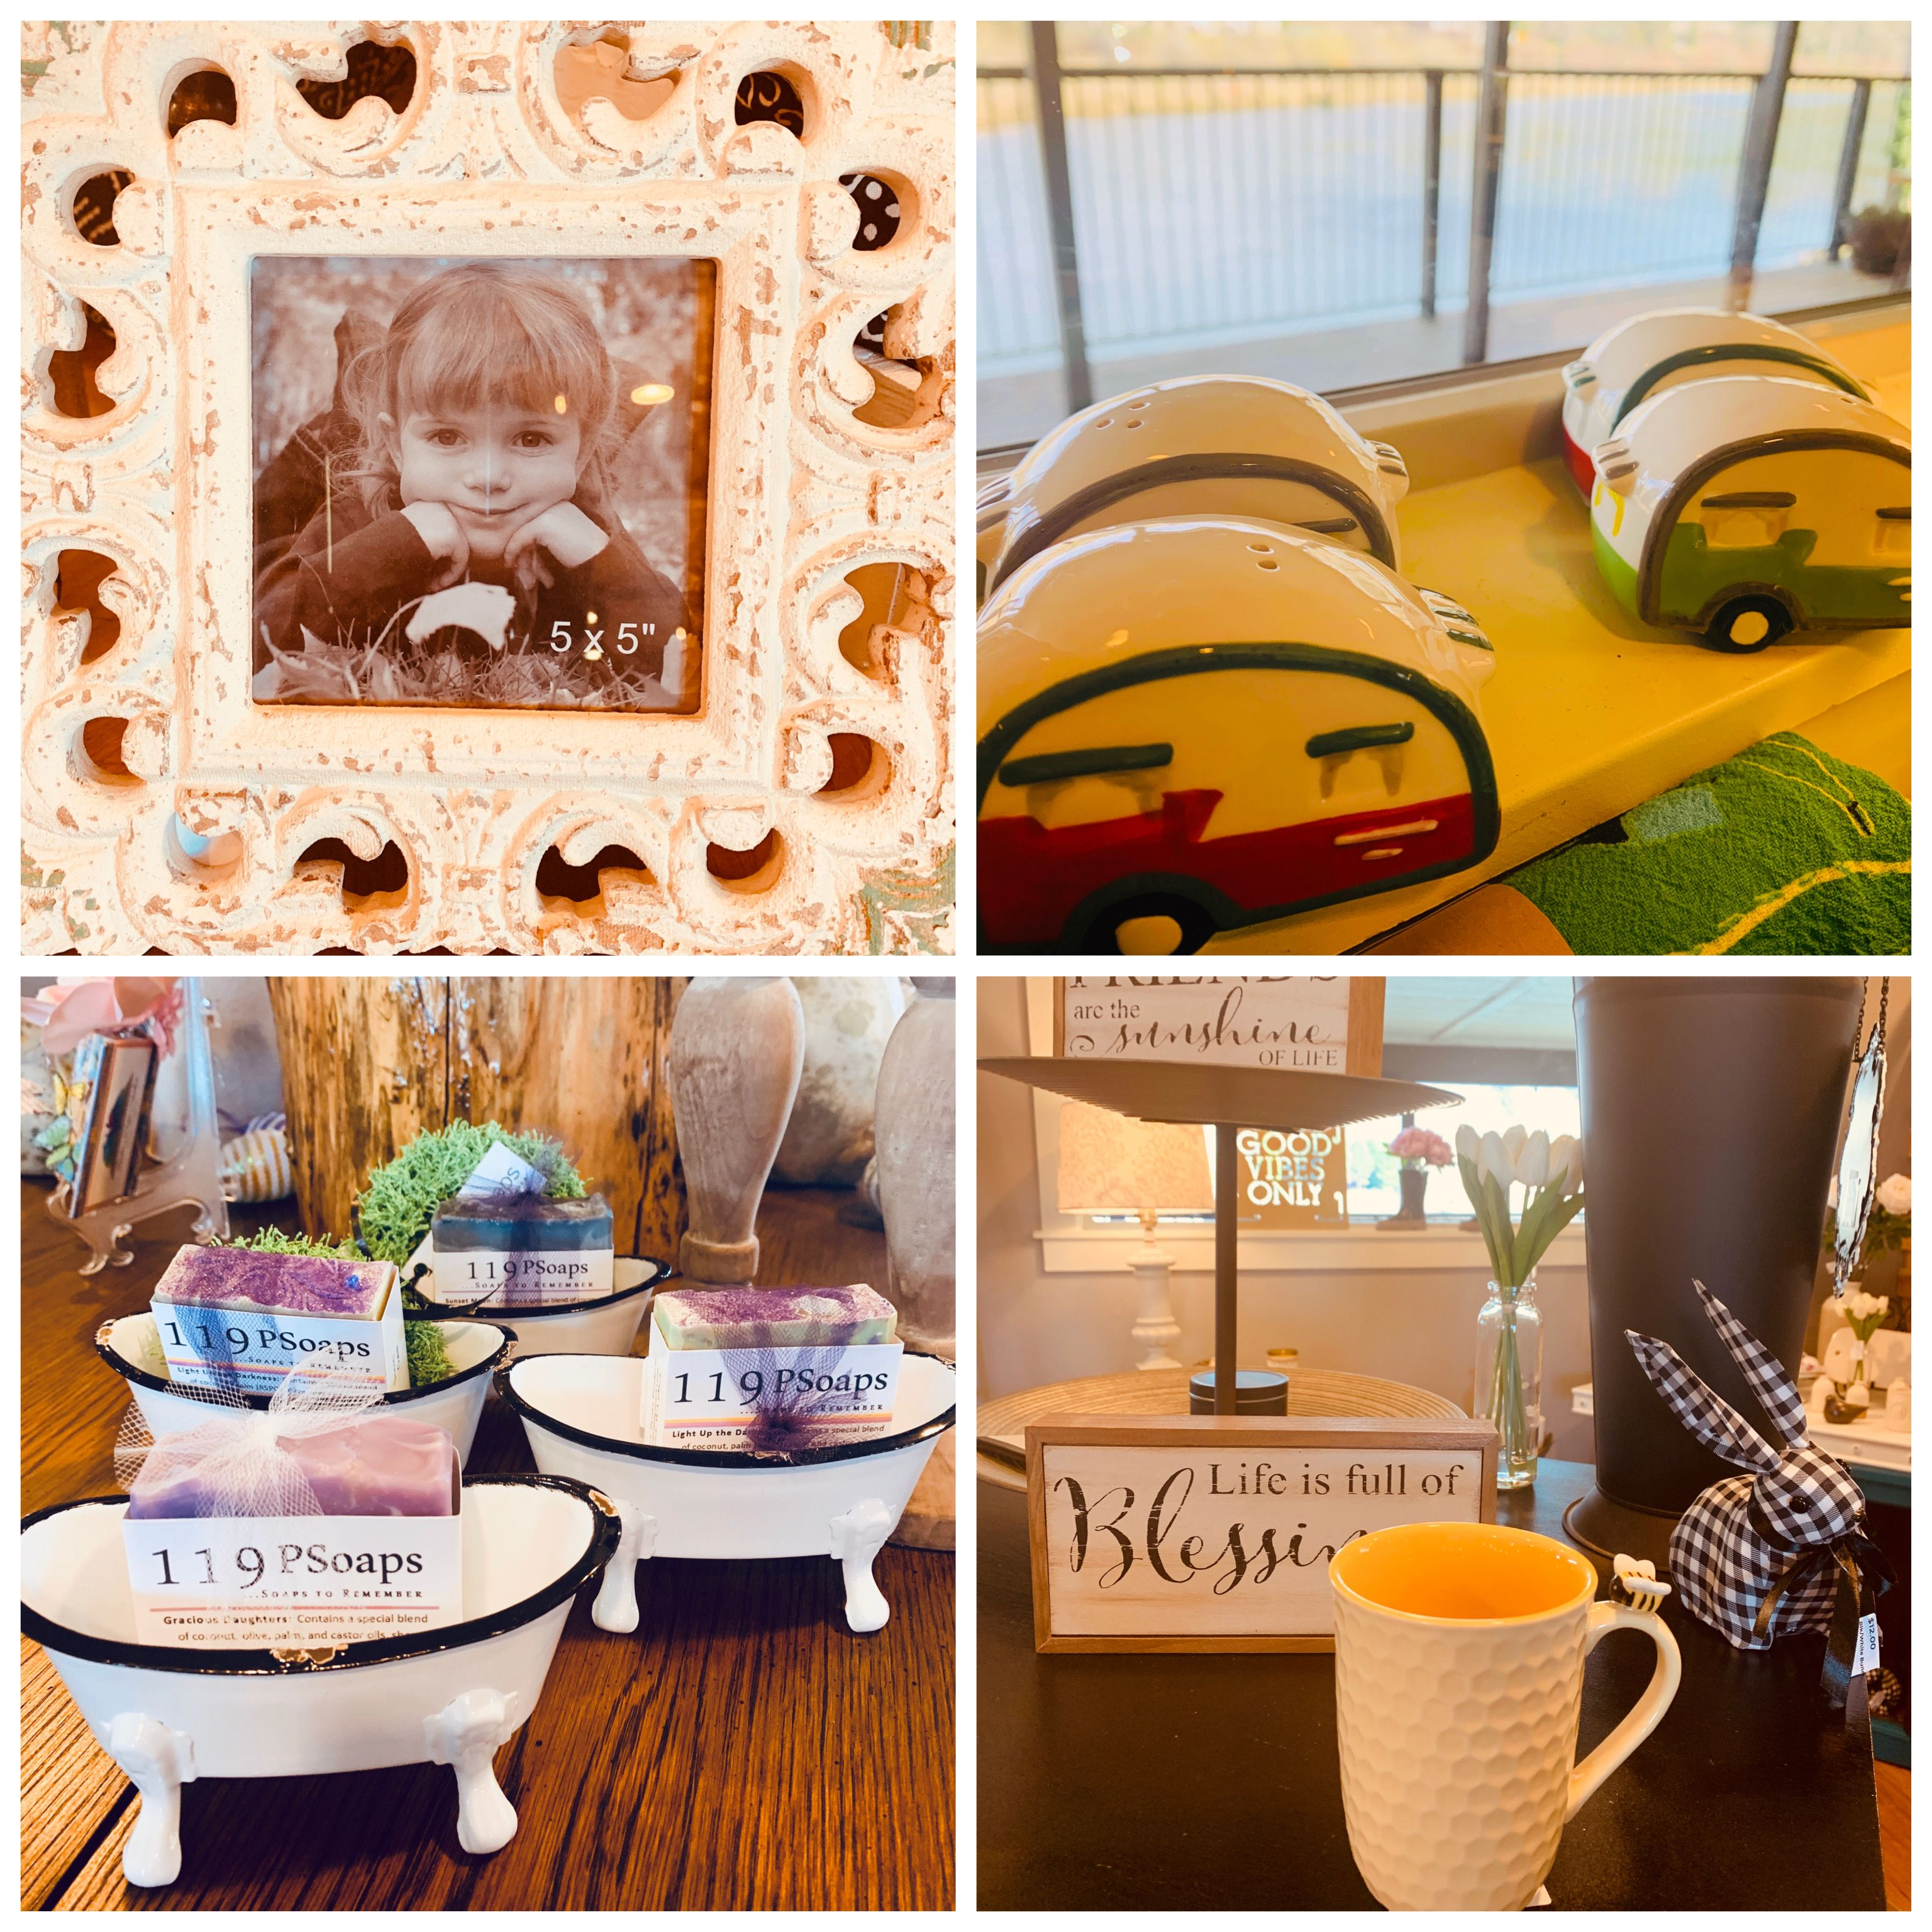 ~Monday Shopping~ Featured items from RiverHouse today!!  Antiqued Frame $27 Camper S&P Shakers $10 Tub Soap Dish $9.50 Bee Mug $13.00  PM RiverHouse to purchase any item posted from today and before.  Will be posting when an item is sold out.  Tomorrow we will be completing orders from 2-4 and can be picked up then or by appointment.   Thank you all❤️ #shopping #giftshop #springdecorating #shoplocal #frames #mugs #soapdish #saltandpeppershakers